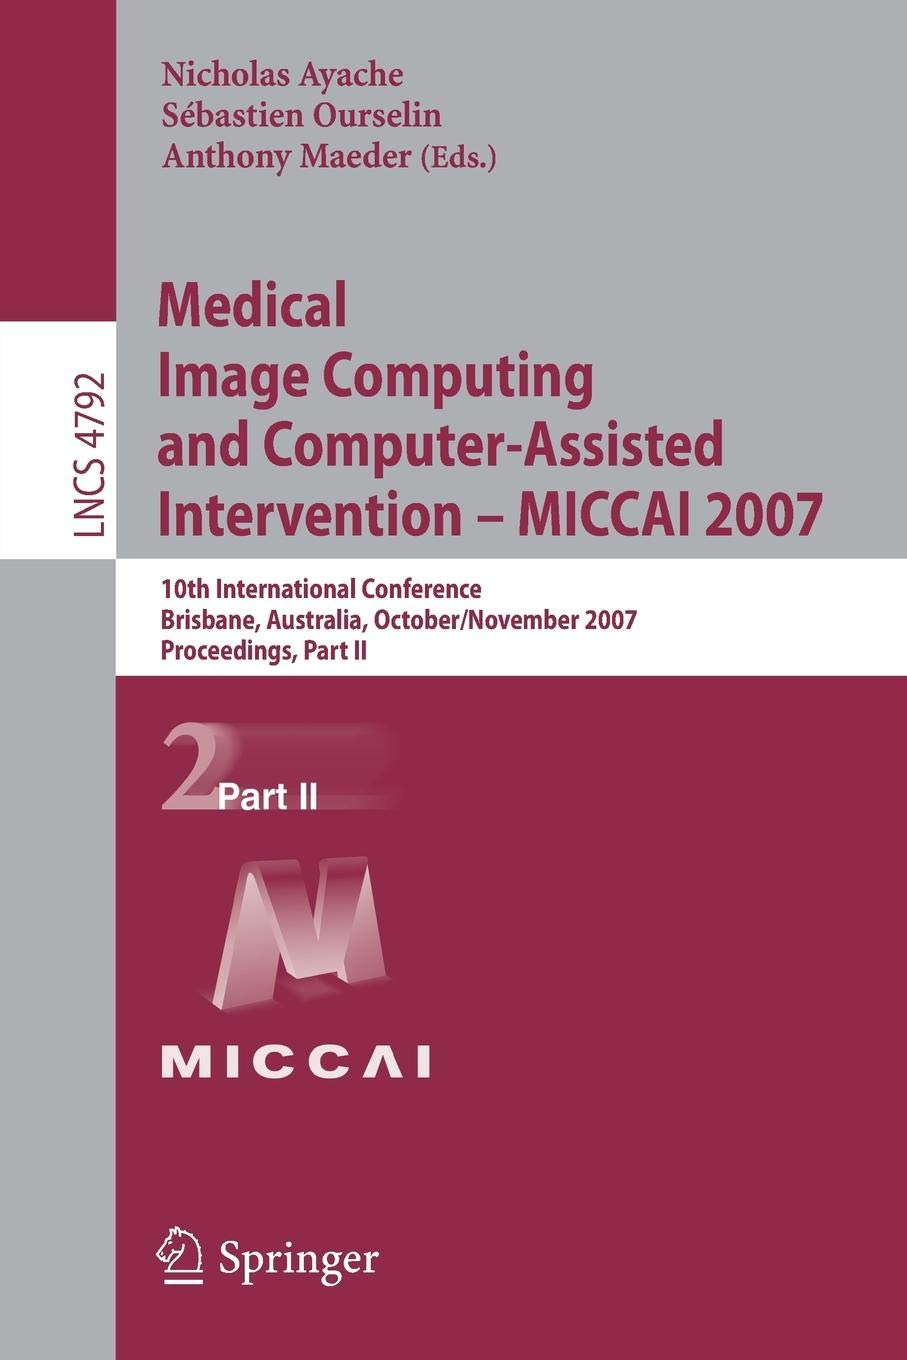 Download Medical Image Computing and Computer-Assisted Intervention – MICCAI 2007: 10th International Conference, Brisbane, Australia, October 29 - November 2, ... Part II (Lecture Notes in Computer Science) pdf epub